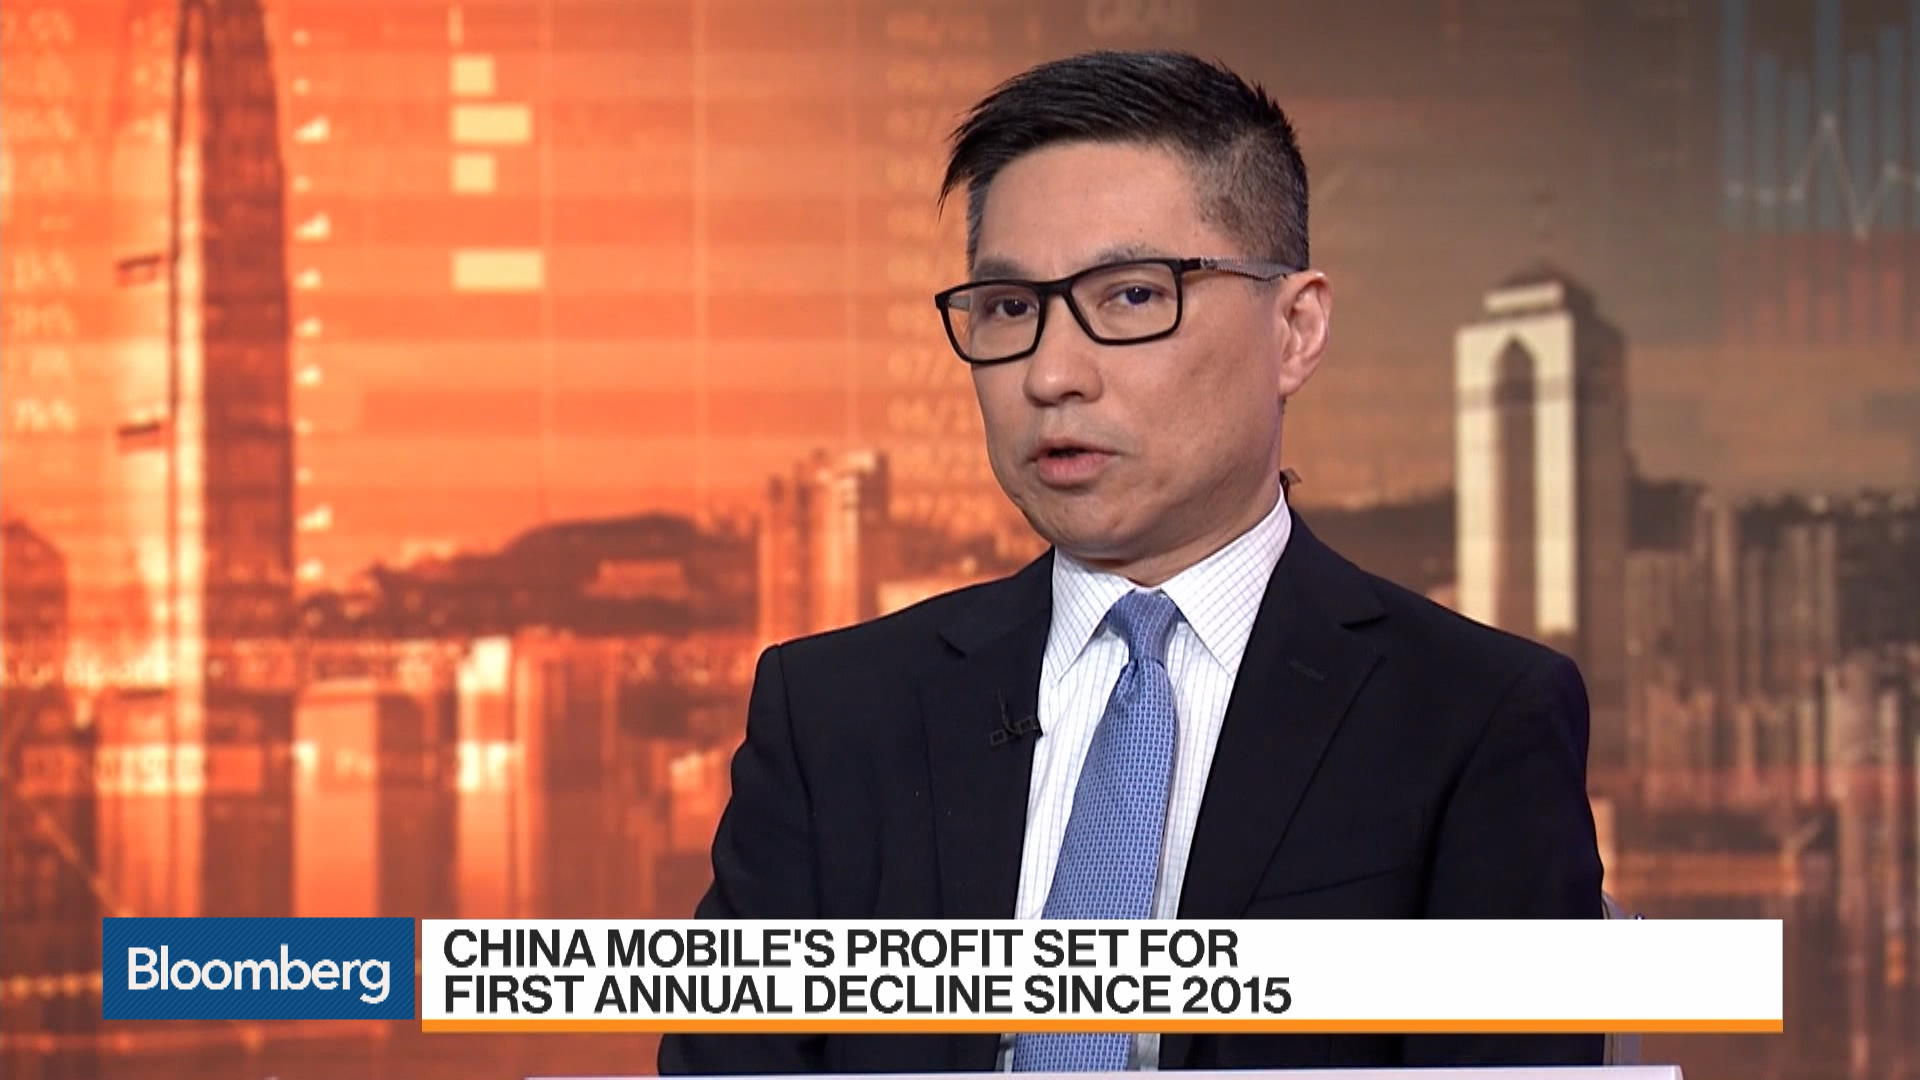 Edison Lee, Head of Telecom, Telecom Equipment Research On Chinese Mobile Phone Operators